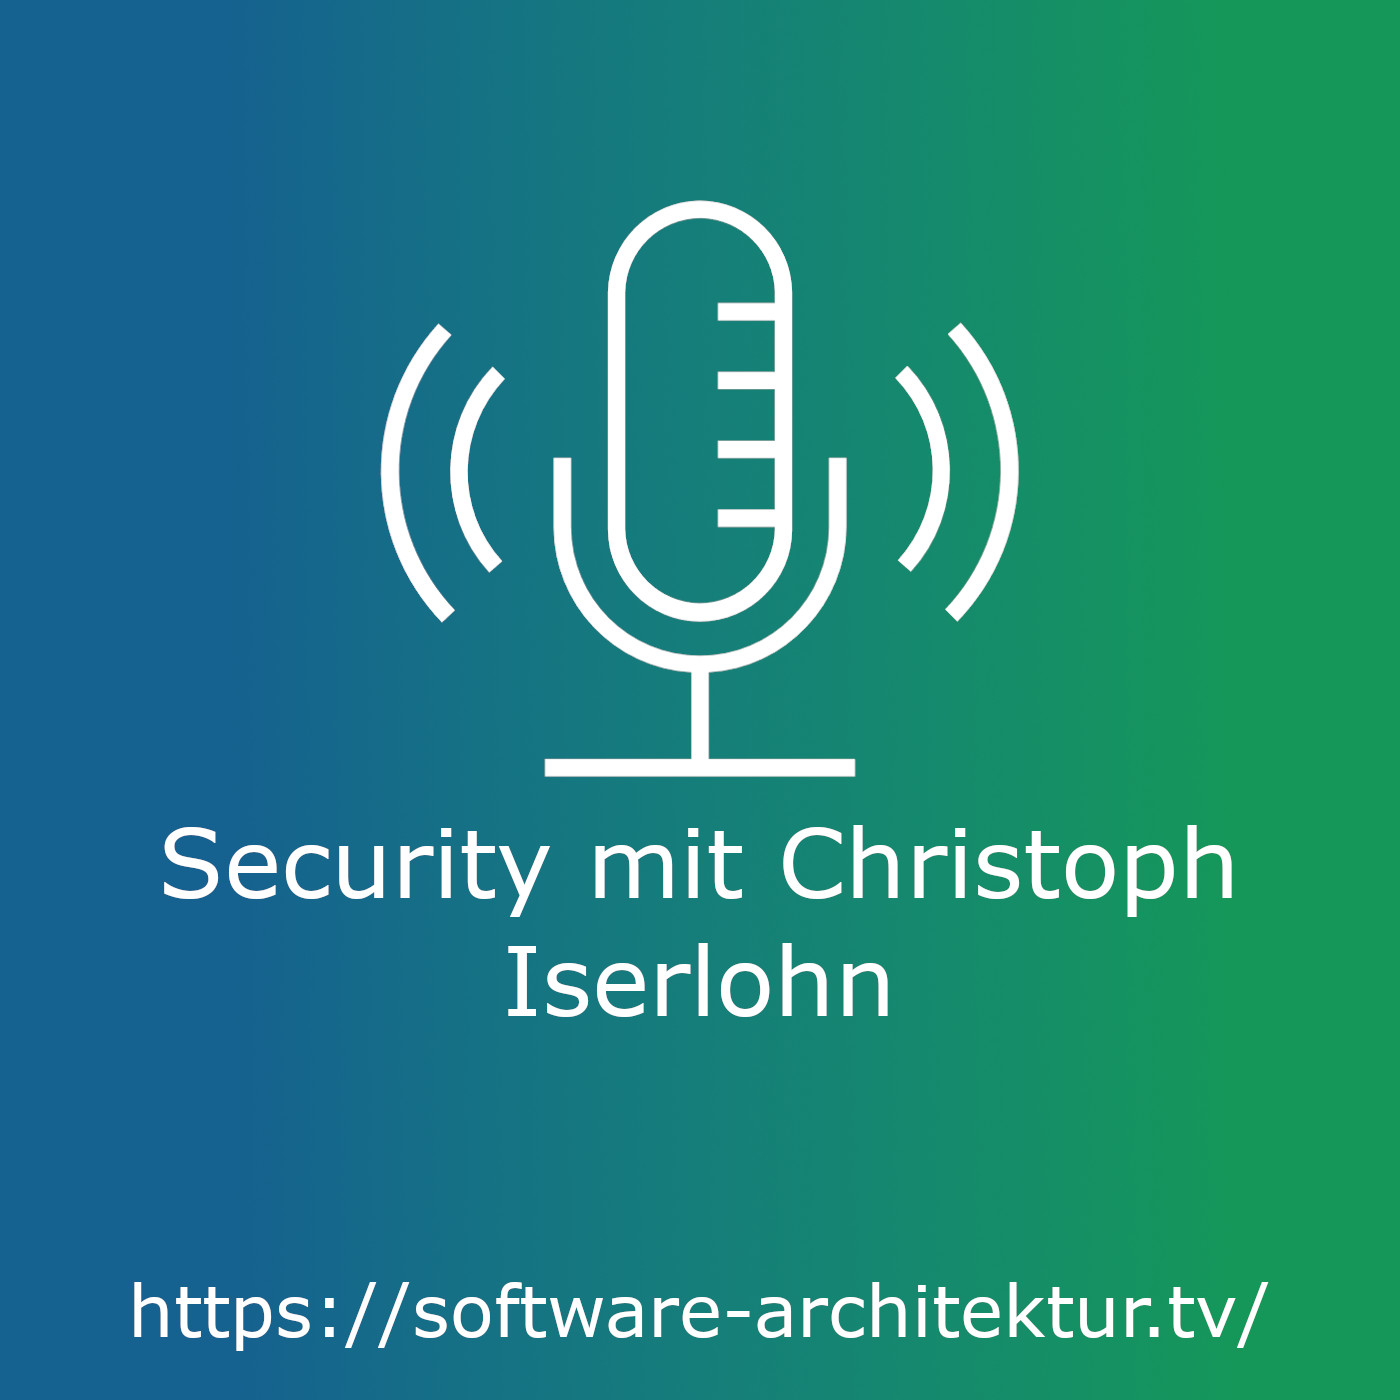 Security mit Christoph Iserlohn